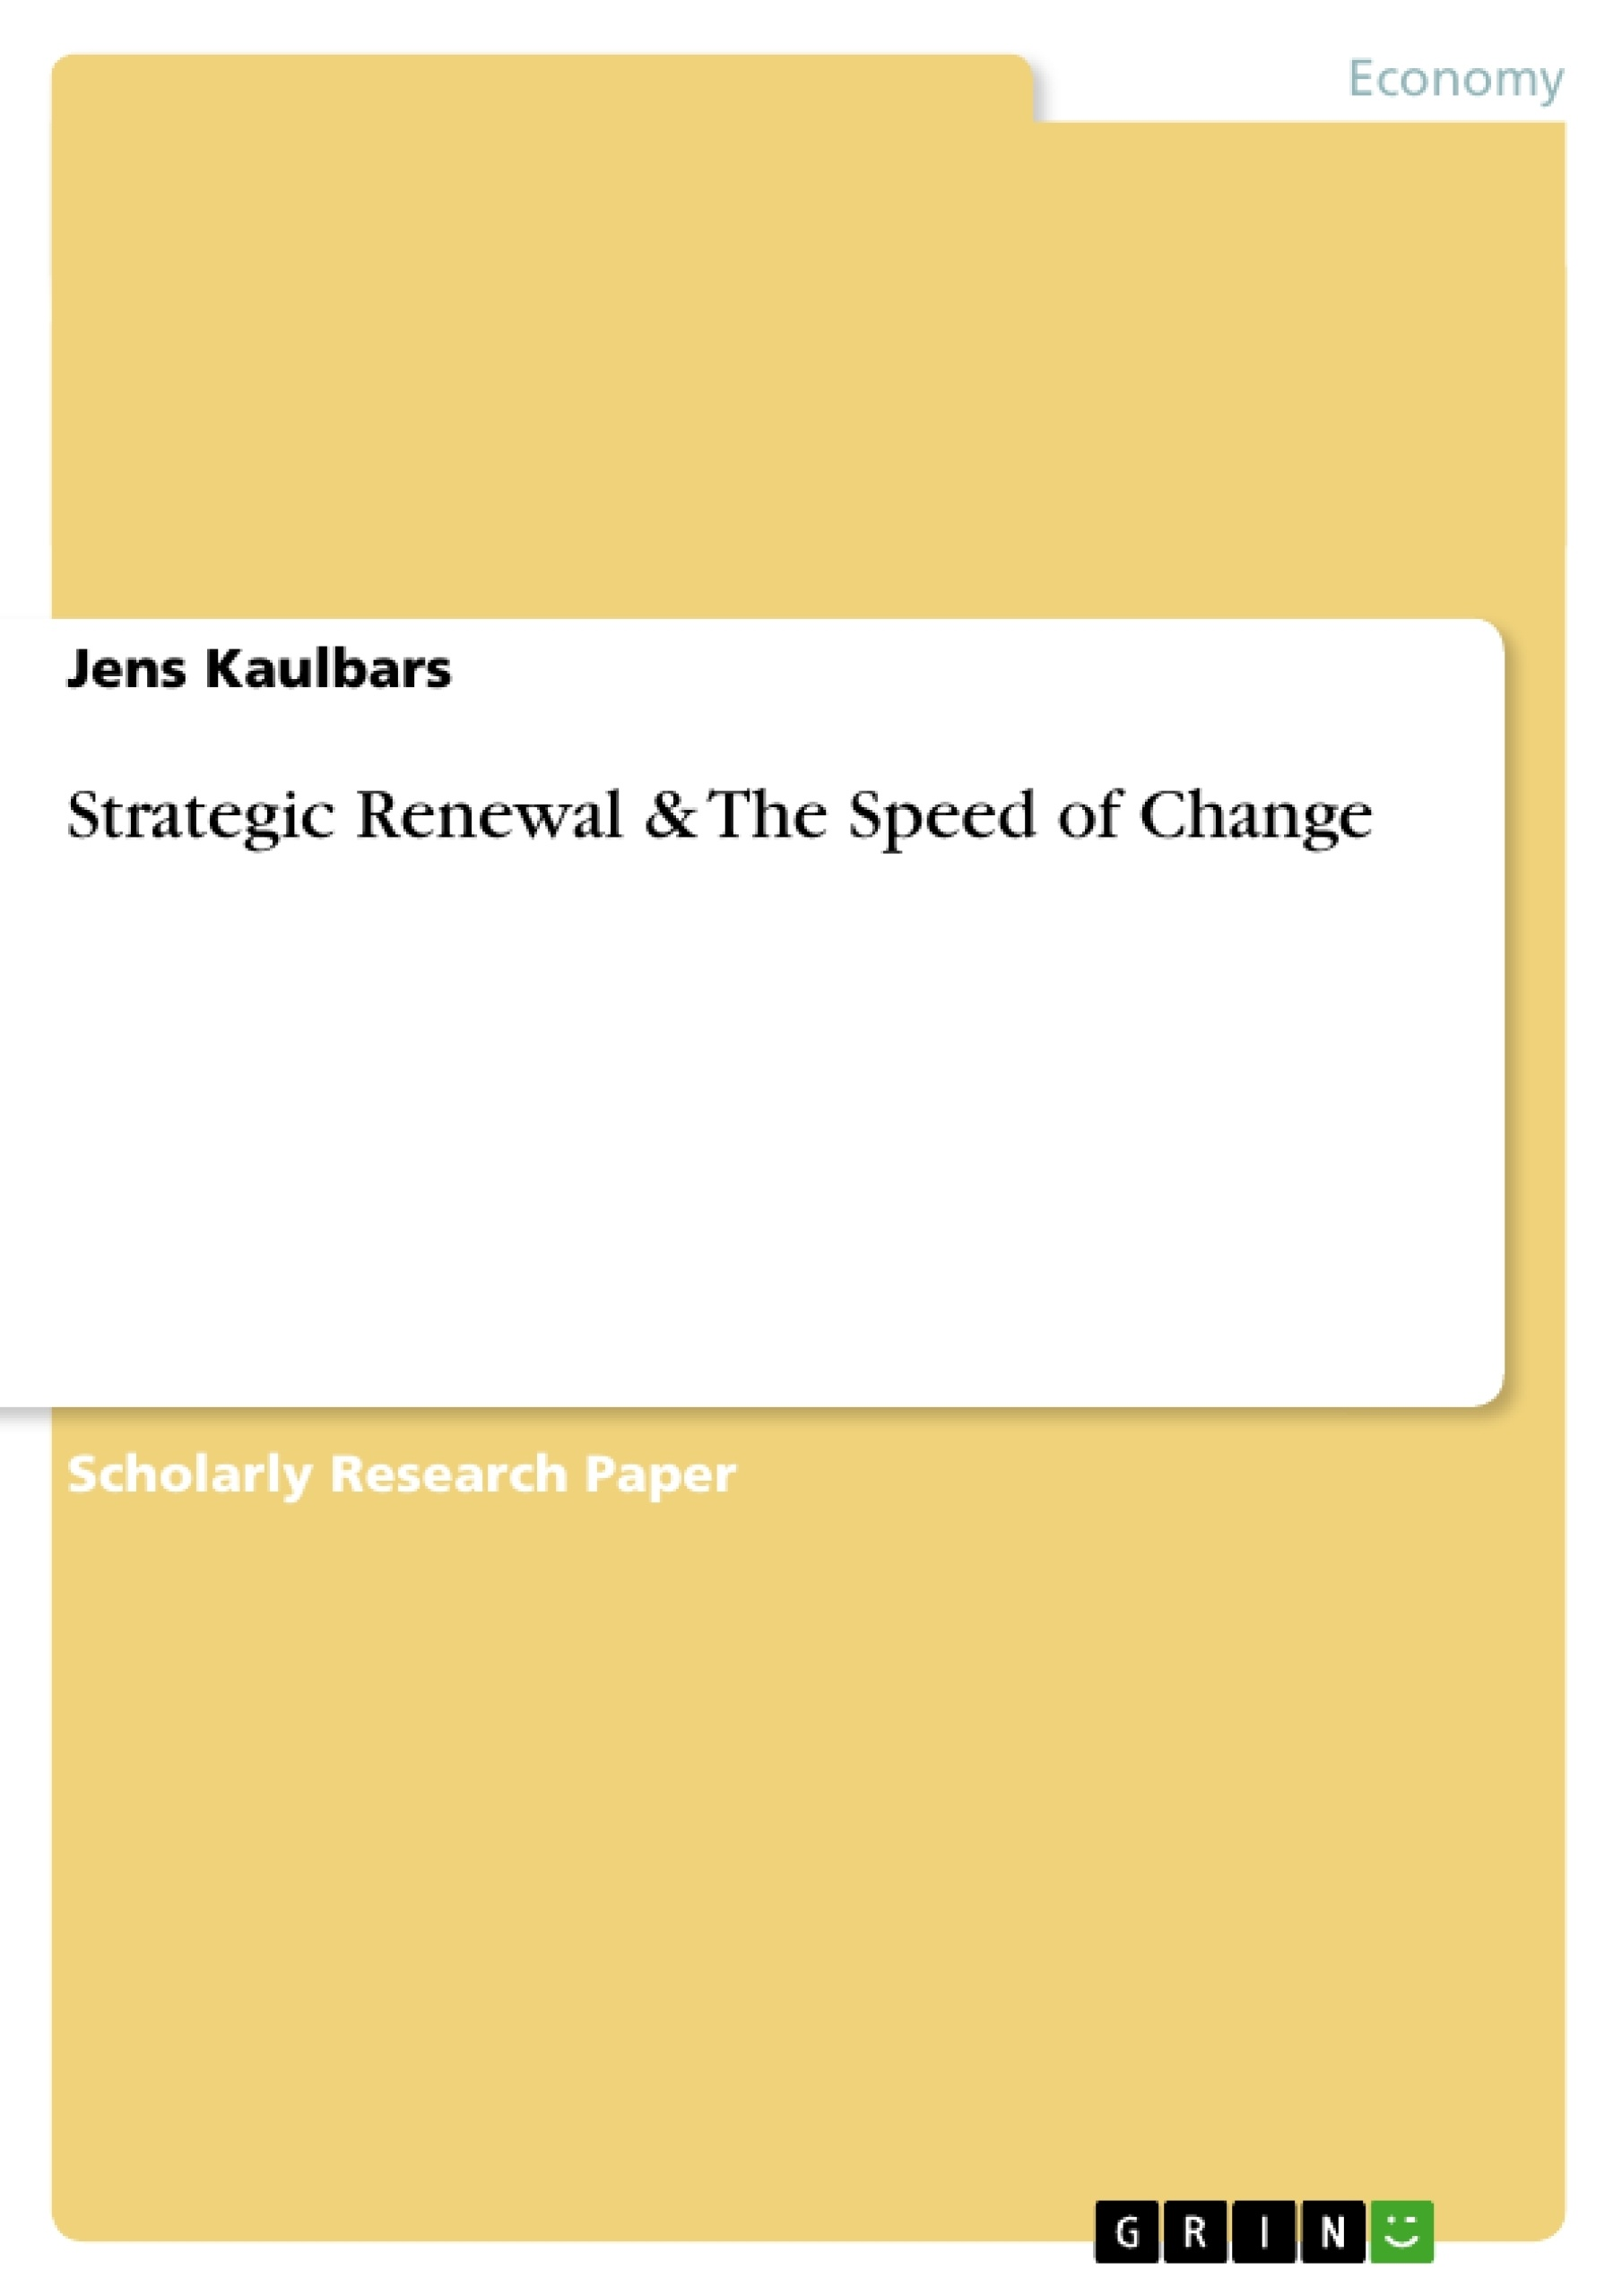 Title: Strategic Renewal & The Speed of Change